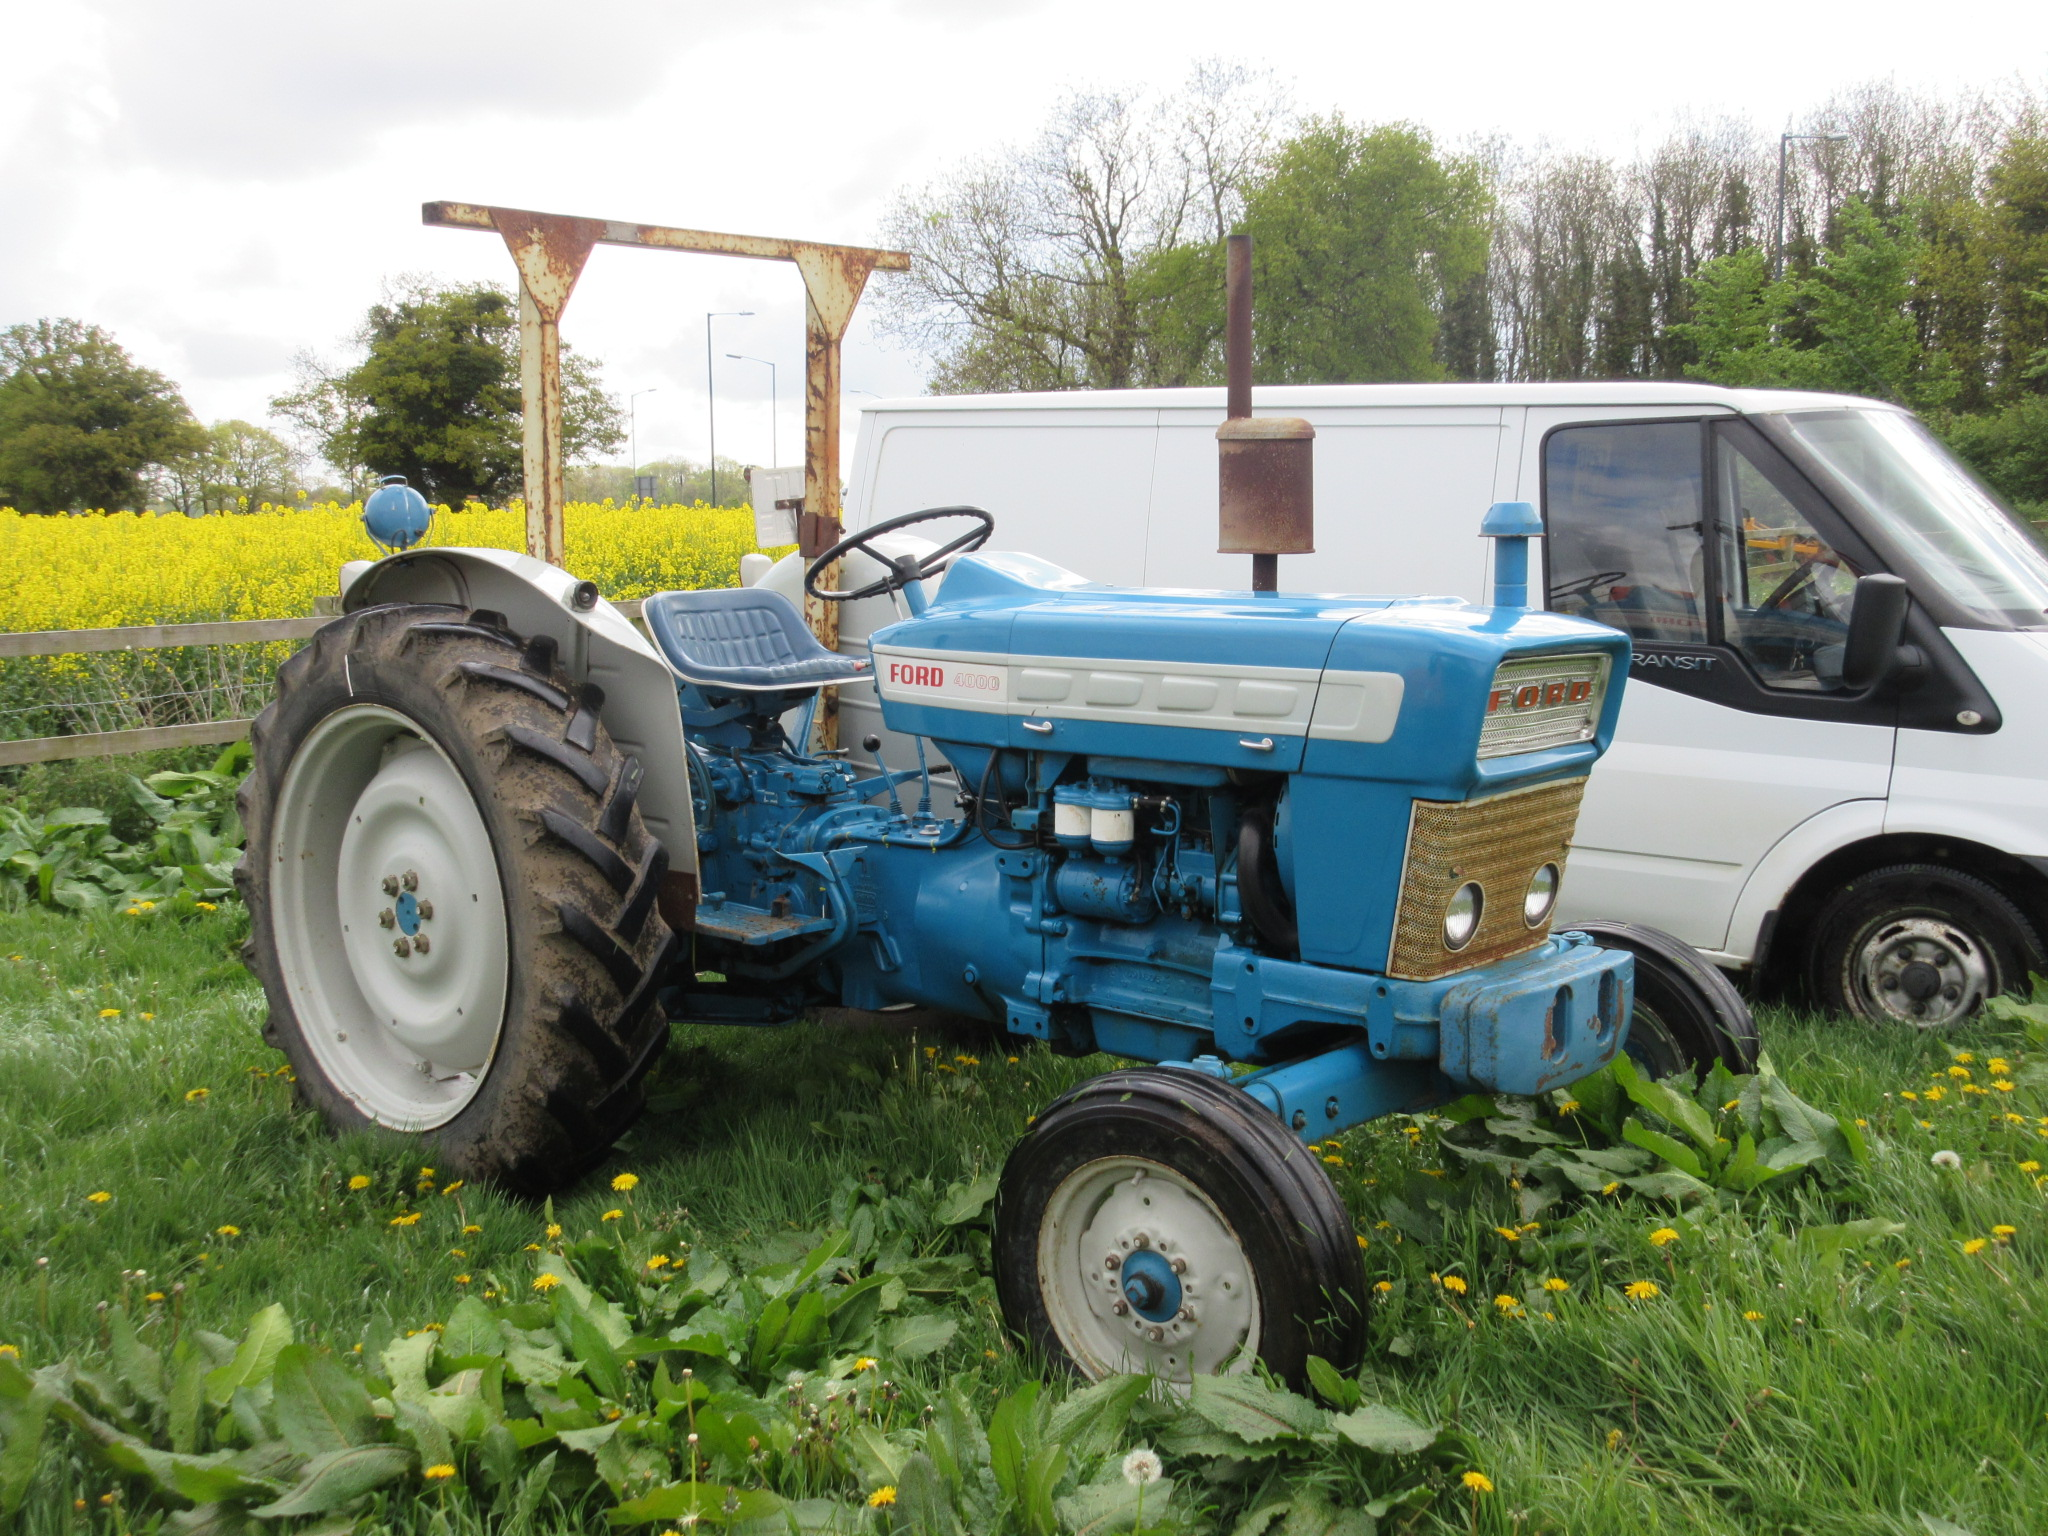 Ford 4000 Tractor : Ford pre force tractor fitted with rollbar and